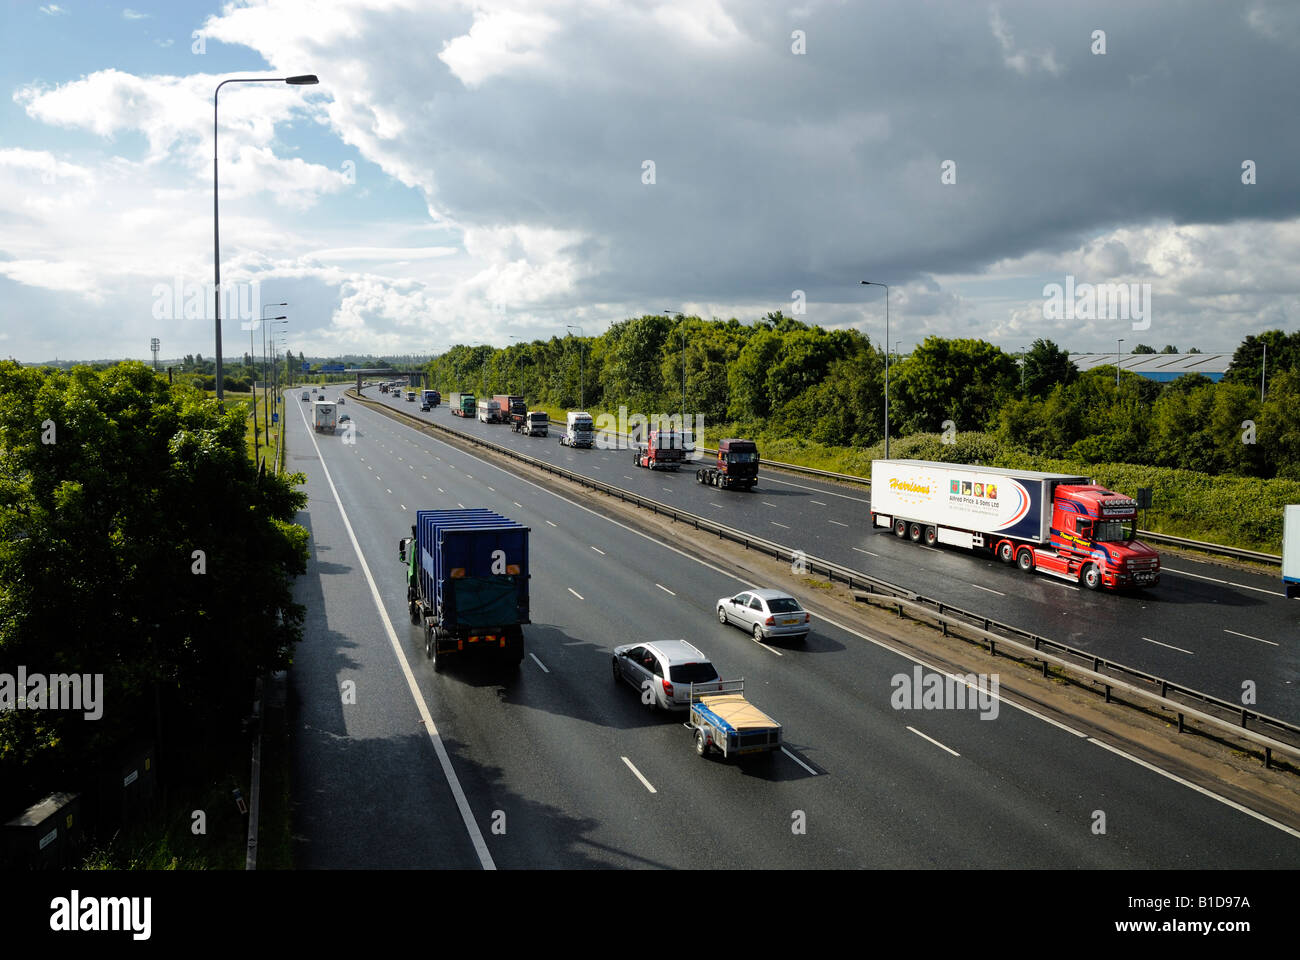 The start of the fuel protest in the northwest along the M6 motorway  on the 14-06-2008 Stock Photo